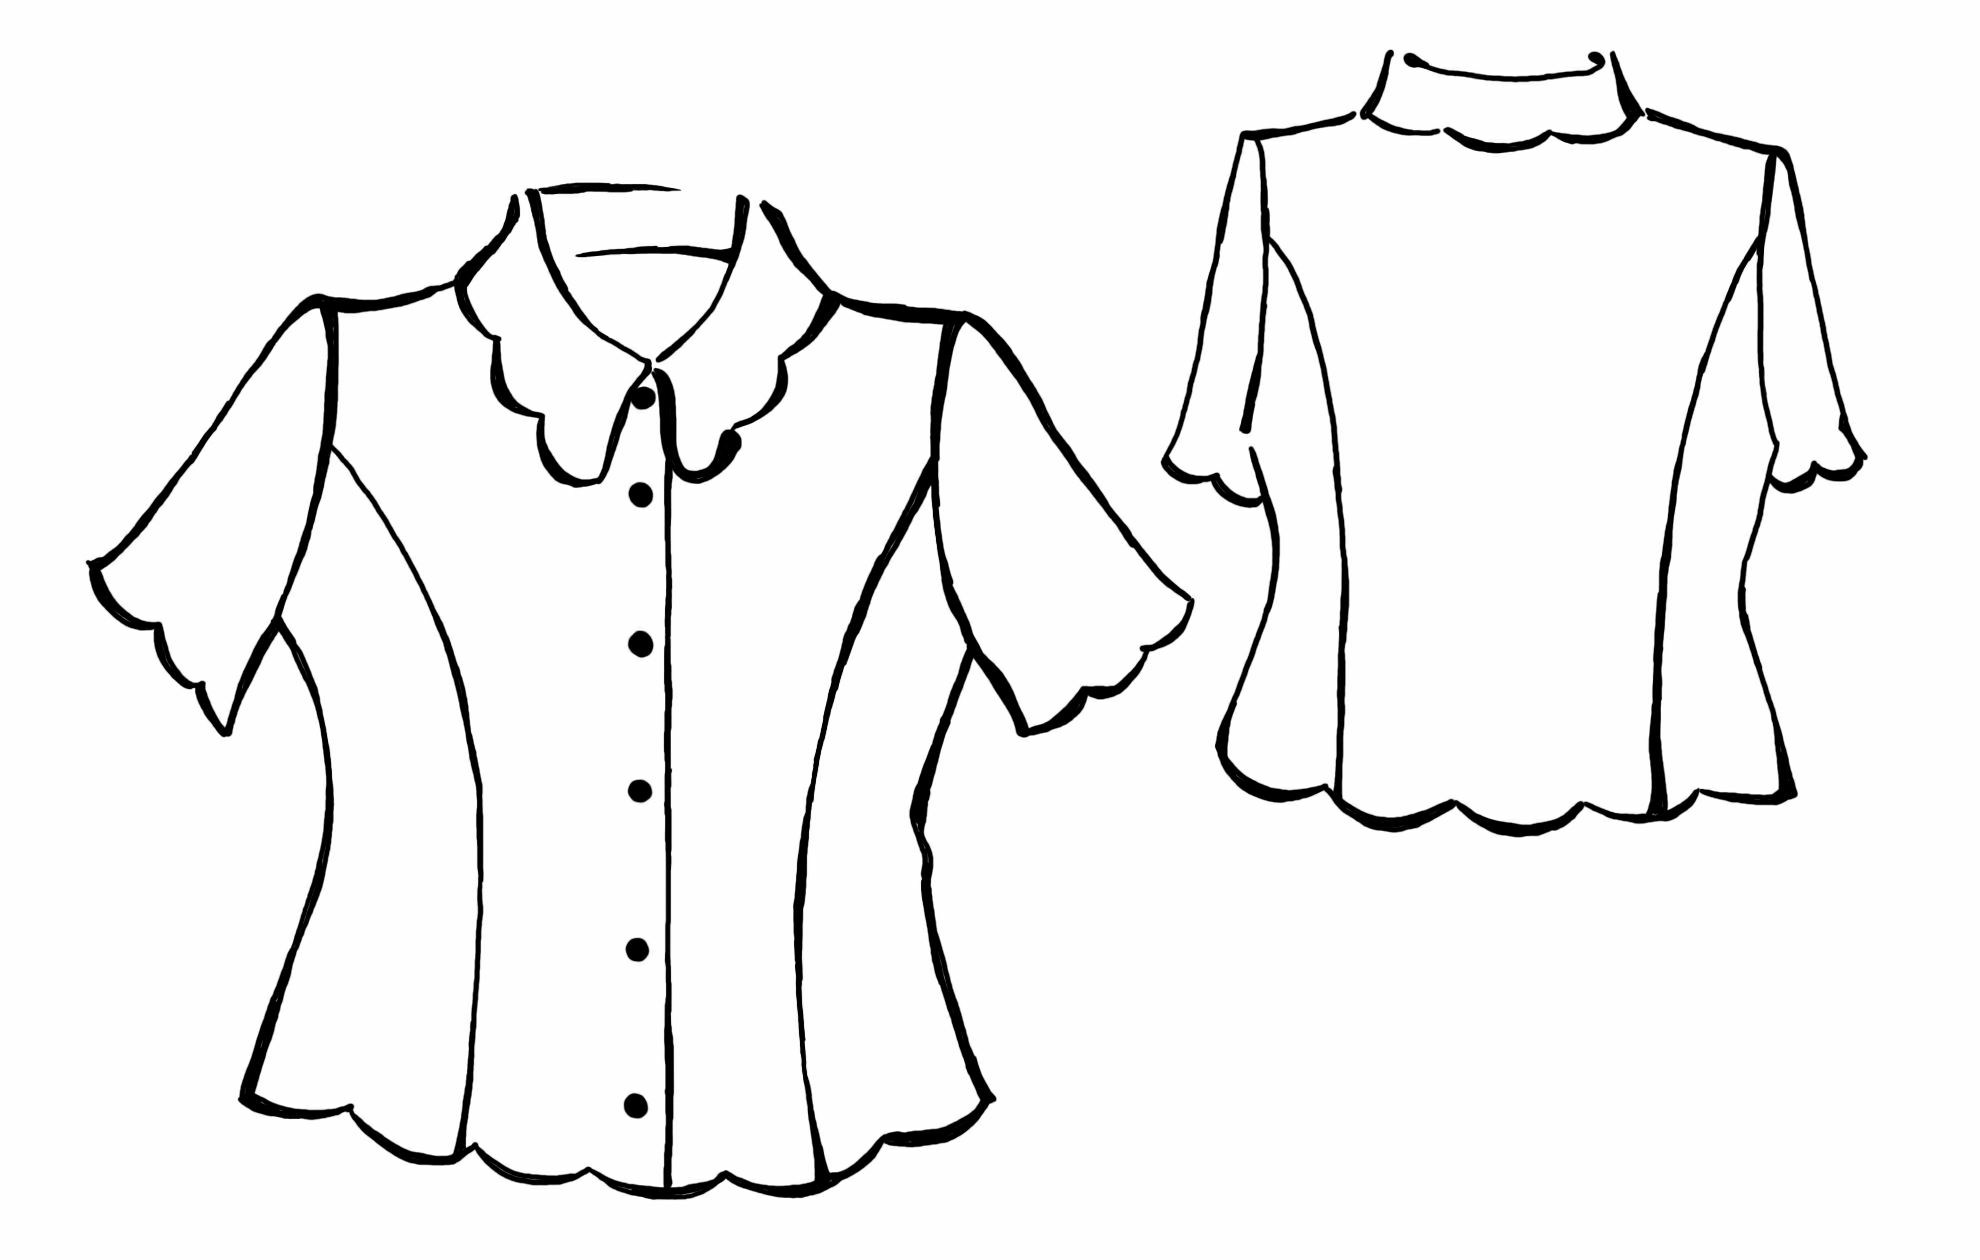 Beautiful Dress Coloring Page Girls together with 3006 likewise 4997 likewise Woman In Chiffon And Velvet Dress besides Index. on drawings of women in gowns